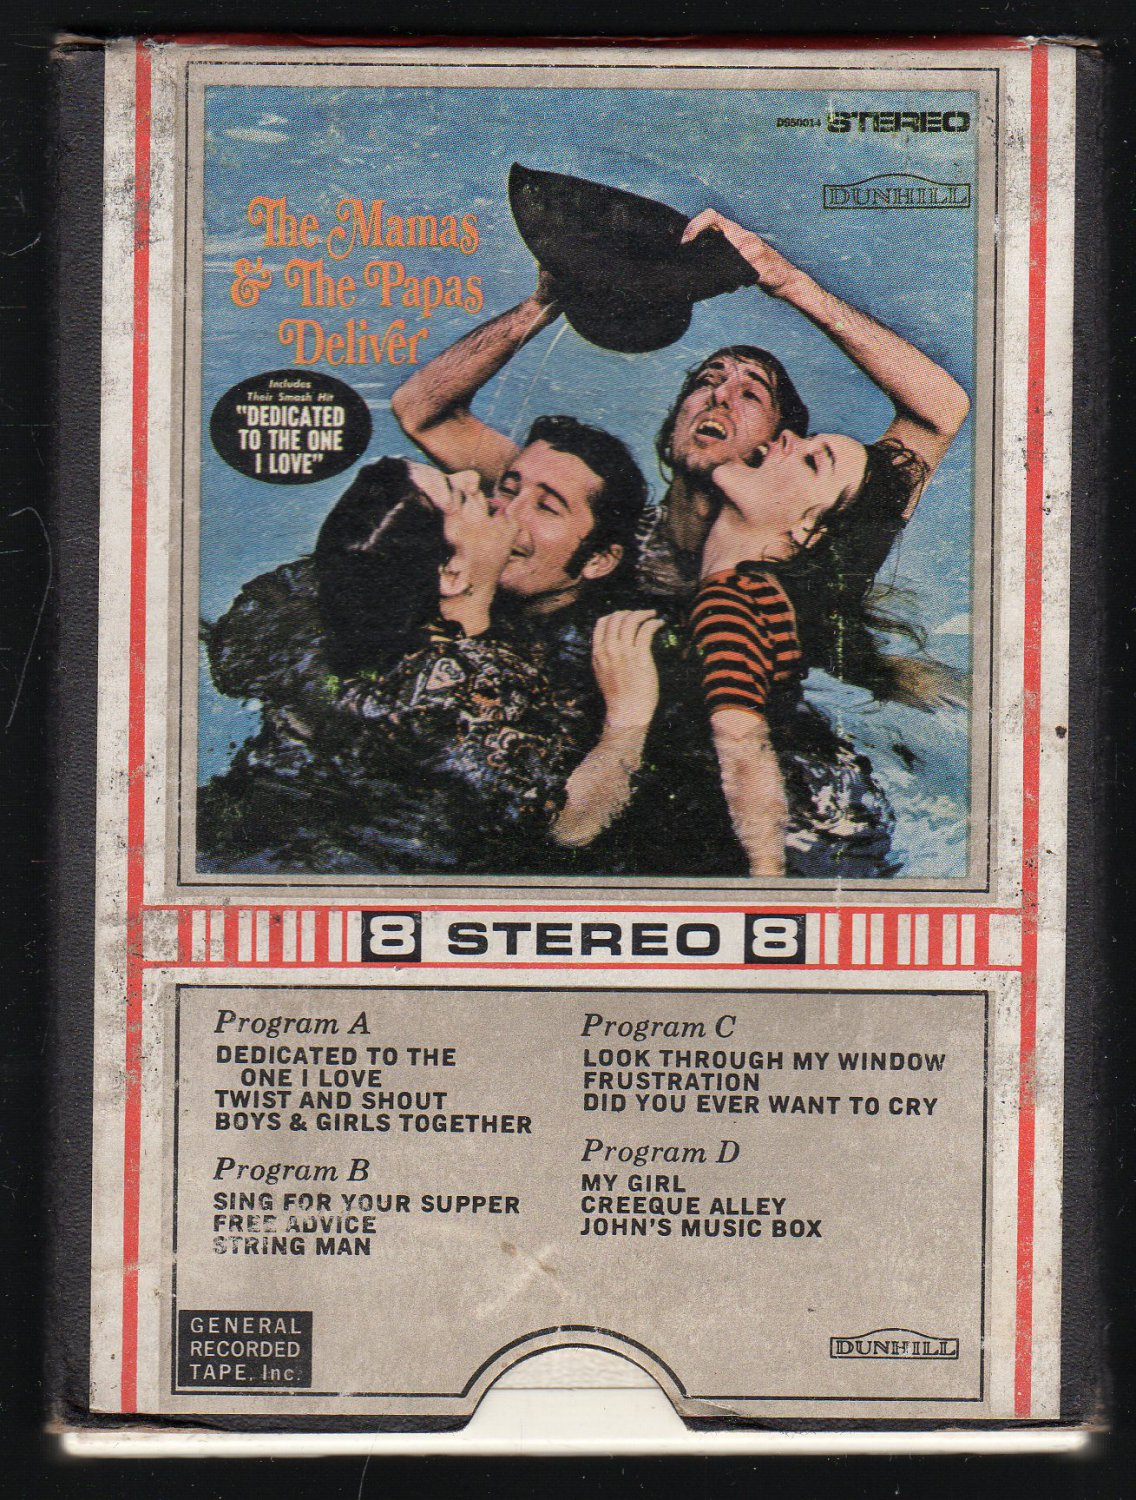 The Mamas & The Papas - Deliver 1967 GRT DUNHILL AC4 8-track tape